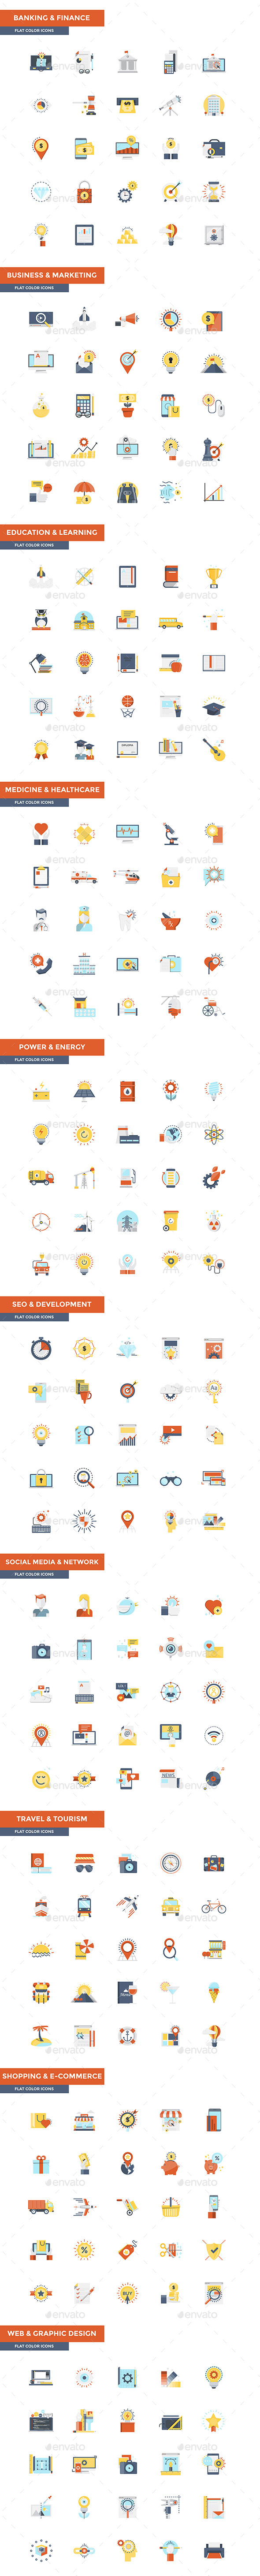 Set of modern Color Flat Design icons - Icons